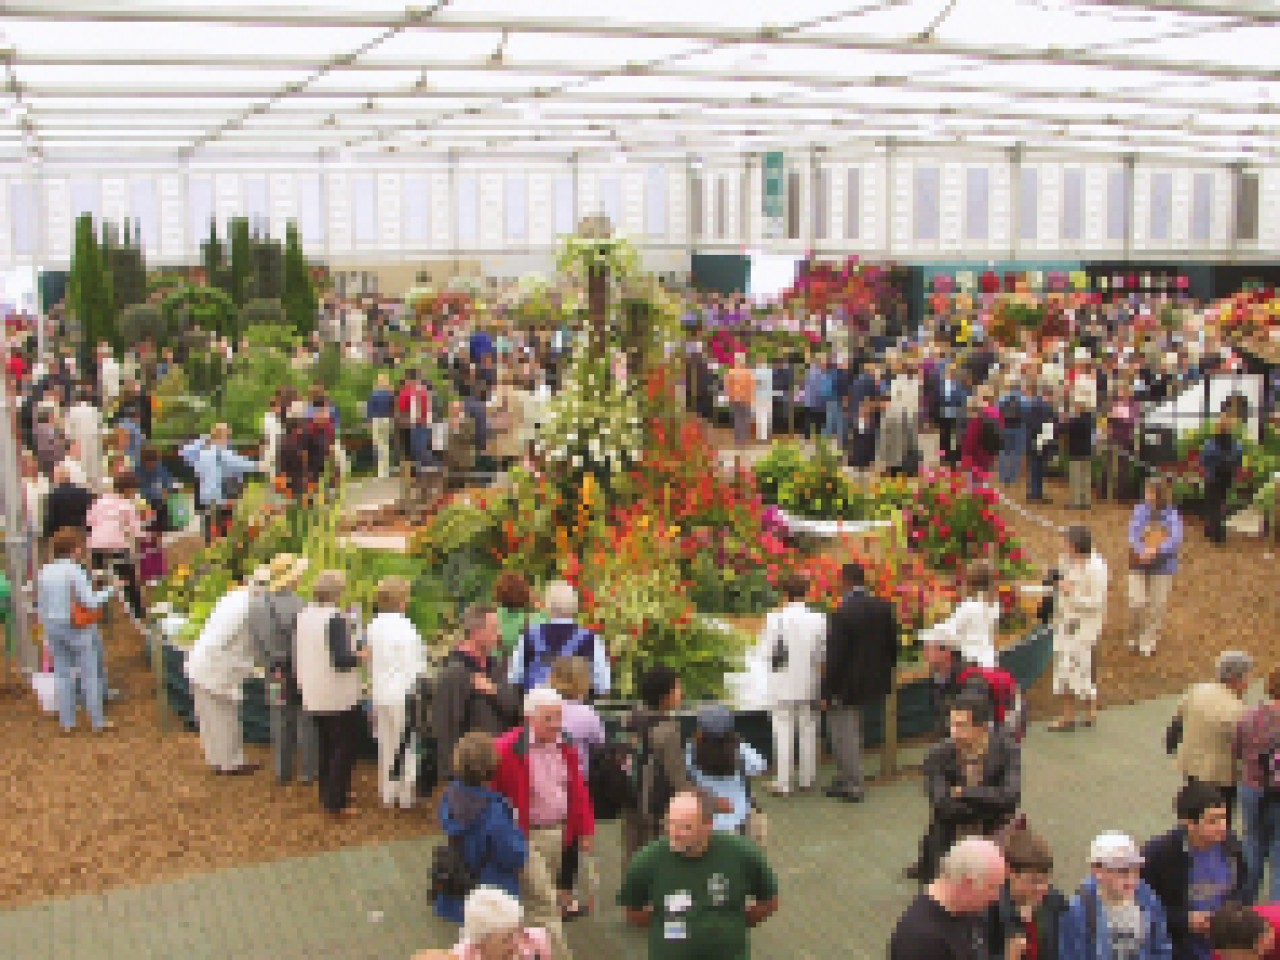 Chelsea Flower Show Hotel & Ticket packages